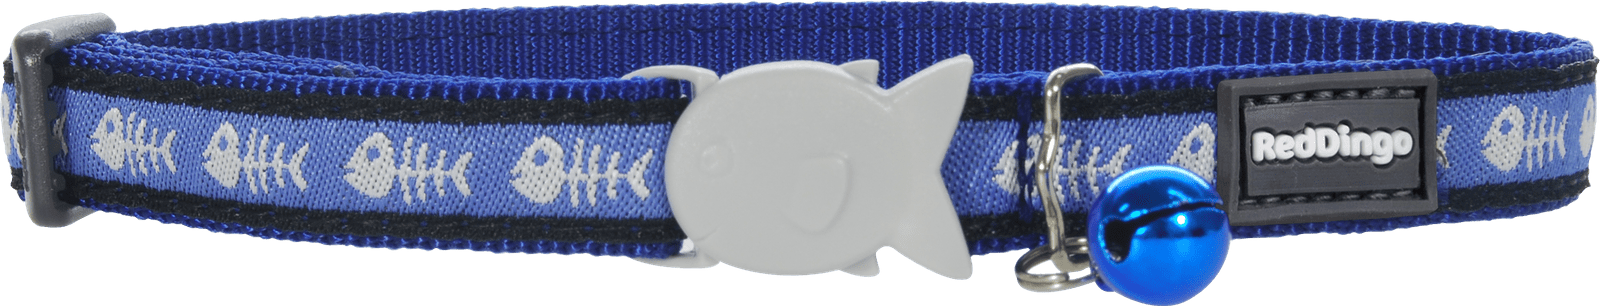 Red Dingo Fishbone Cat Collar - Blue